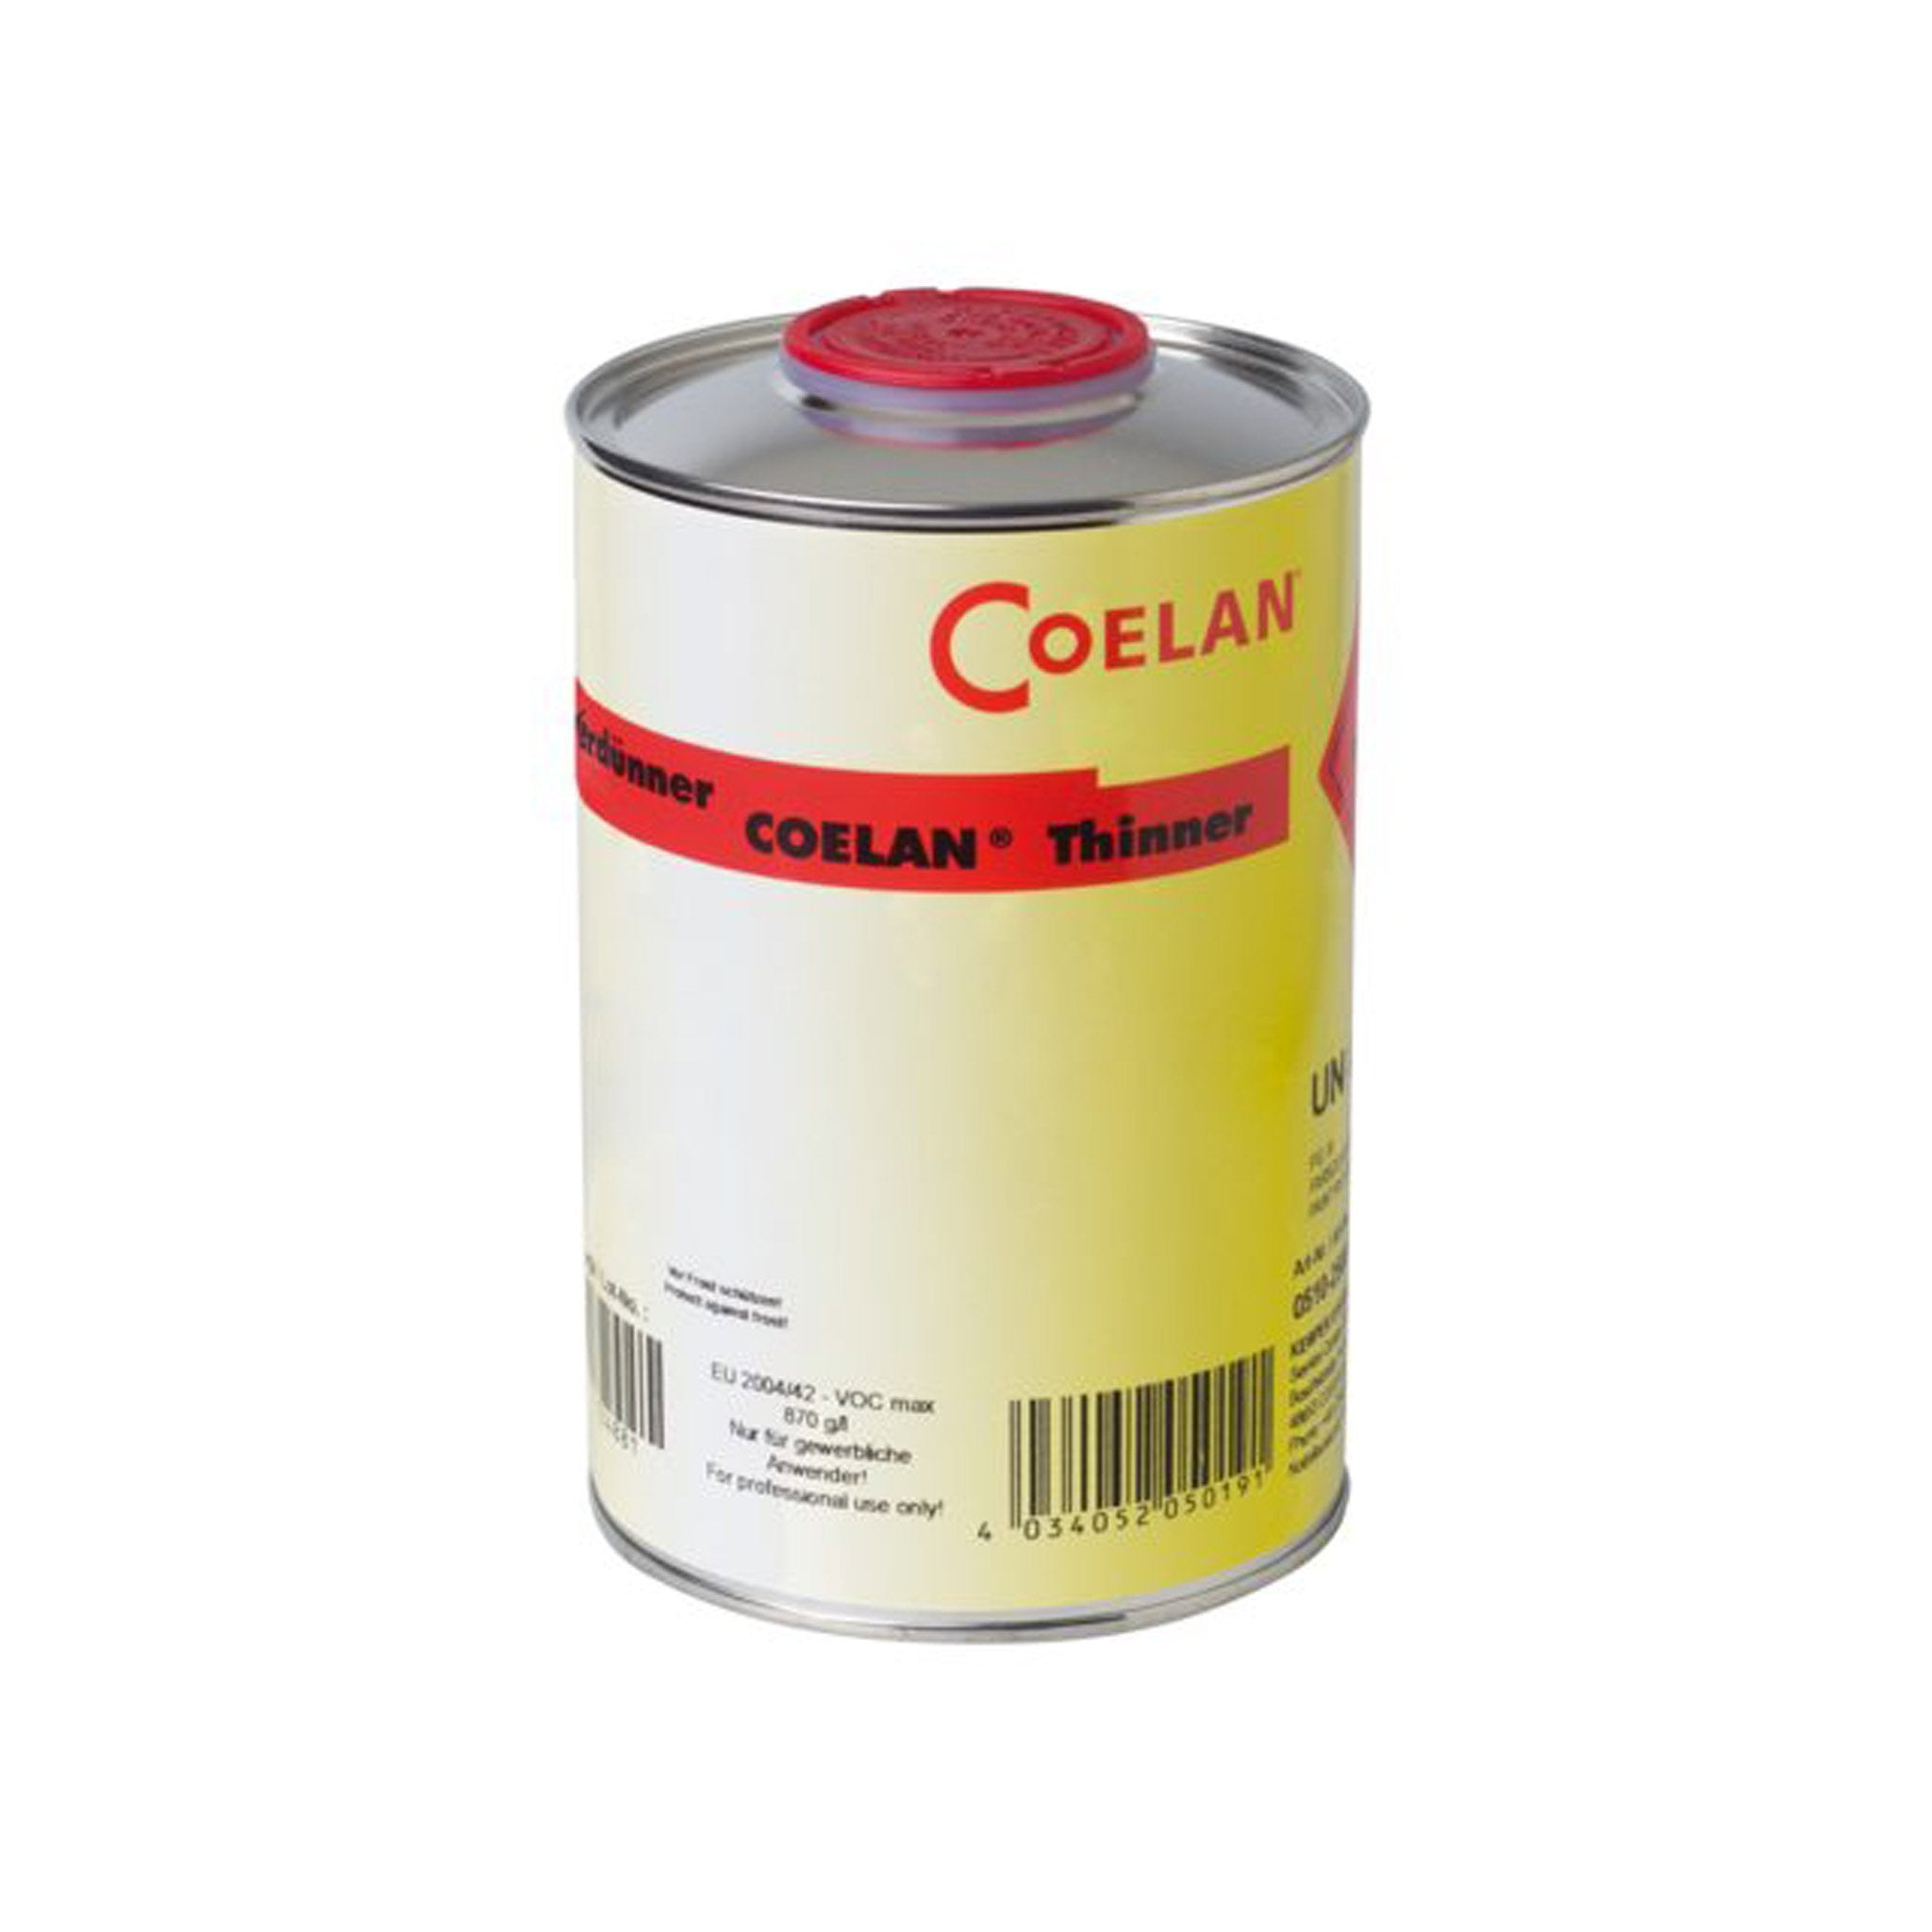 Coelan Thinner for Boat Coating - Arthur Beale